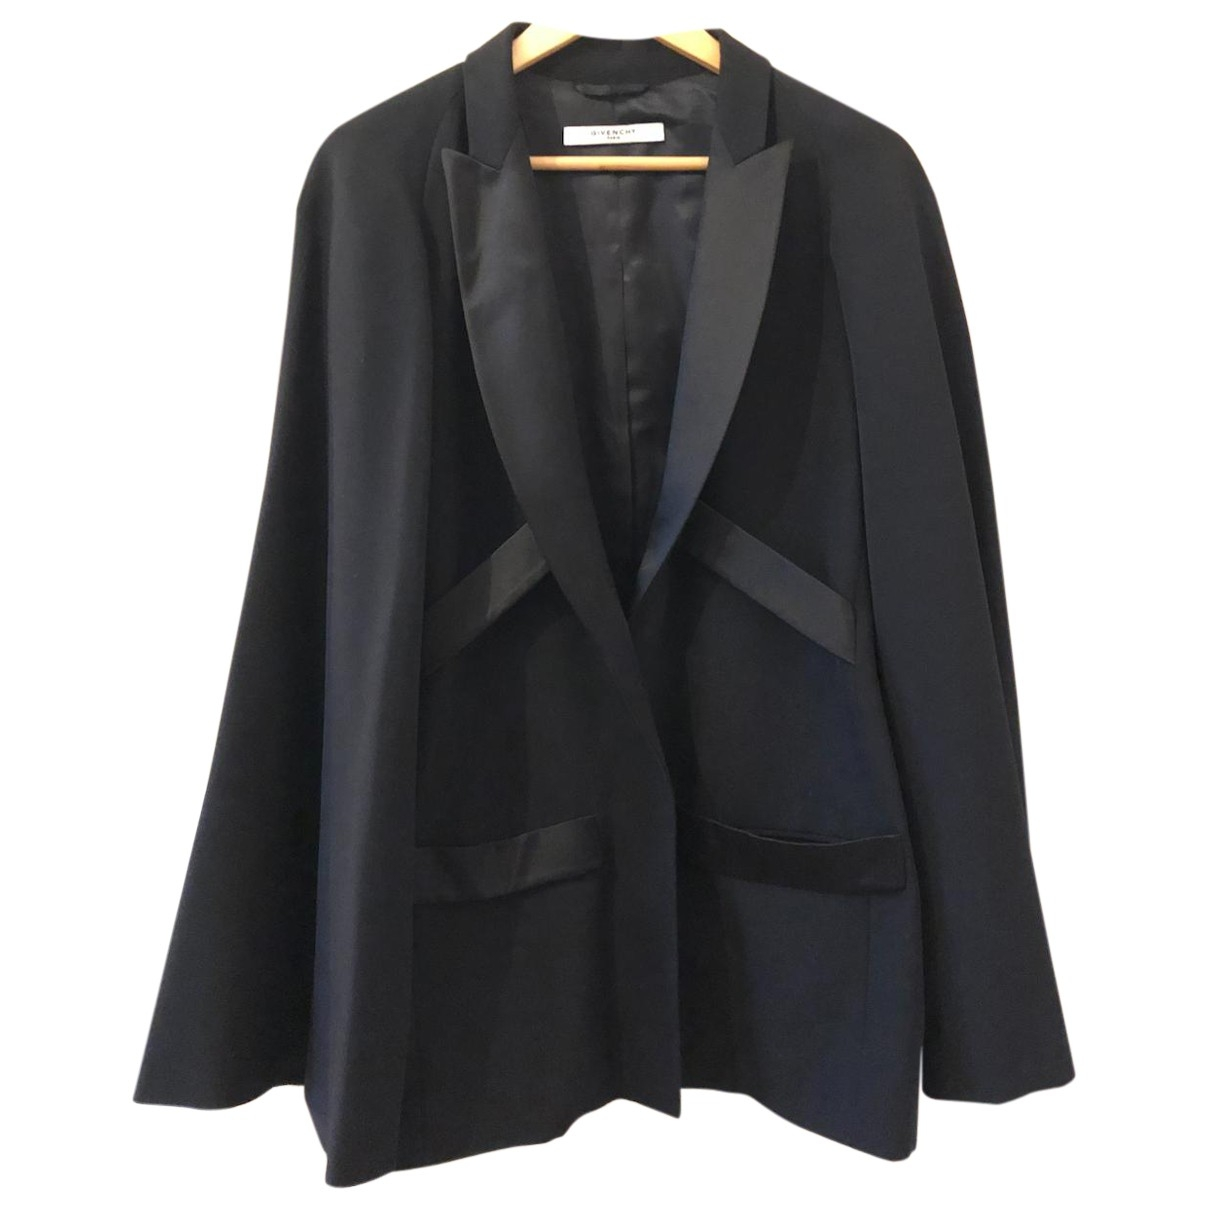 Givenchy \N Black Wool jacket for Women 40 FR